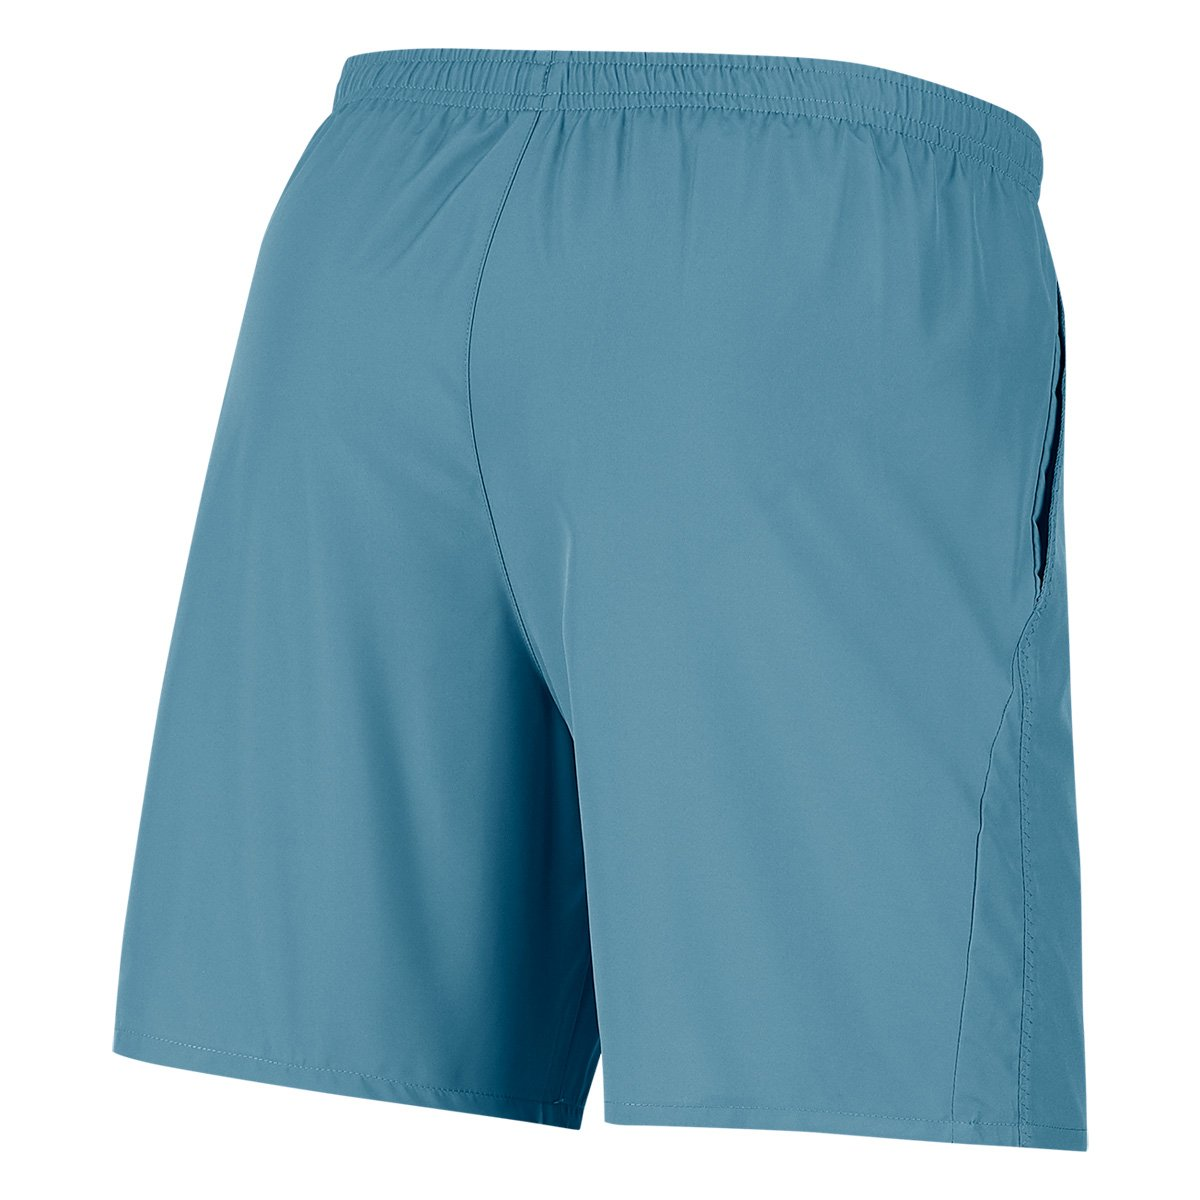 Shorts Nike Dry Fit 7in BF PO Azul Petróleo